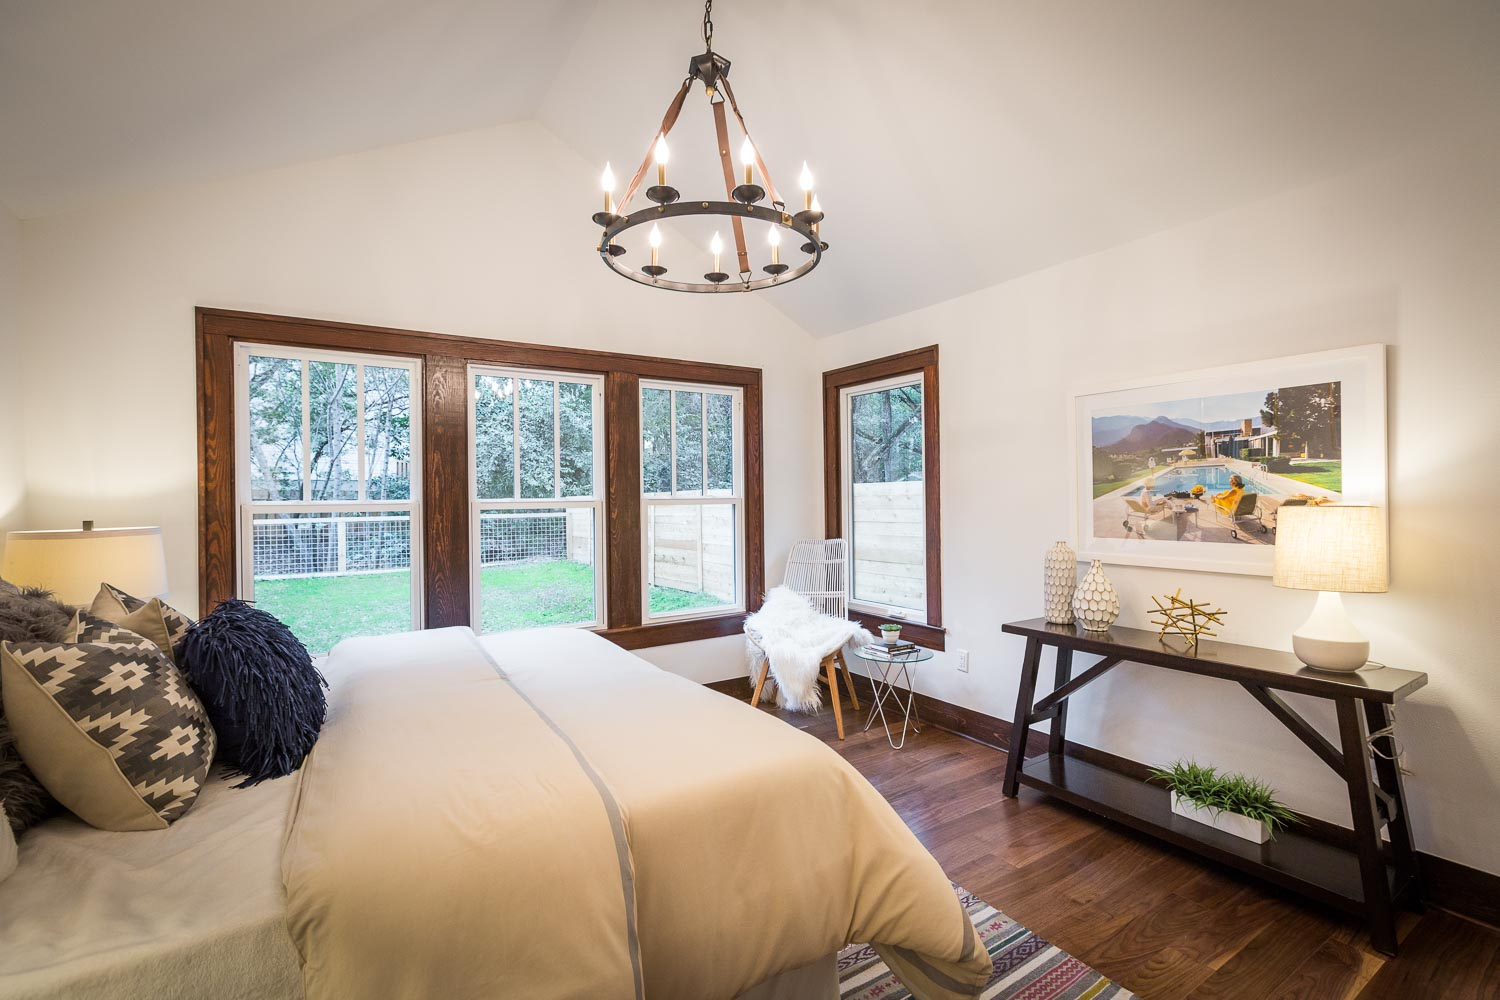 Another view of the master bedroom. Elite Austin Staging provided the perfect staging for the exceptional room. Notice the window bank with dark wood trim.